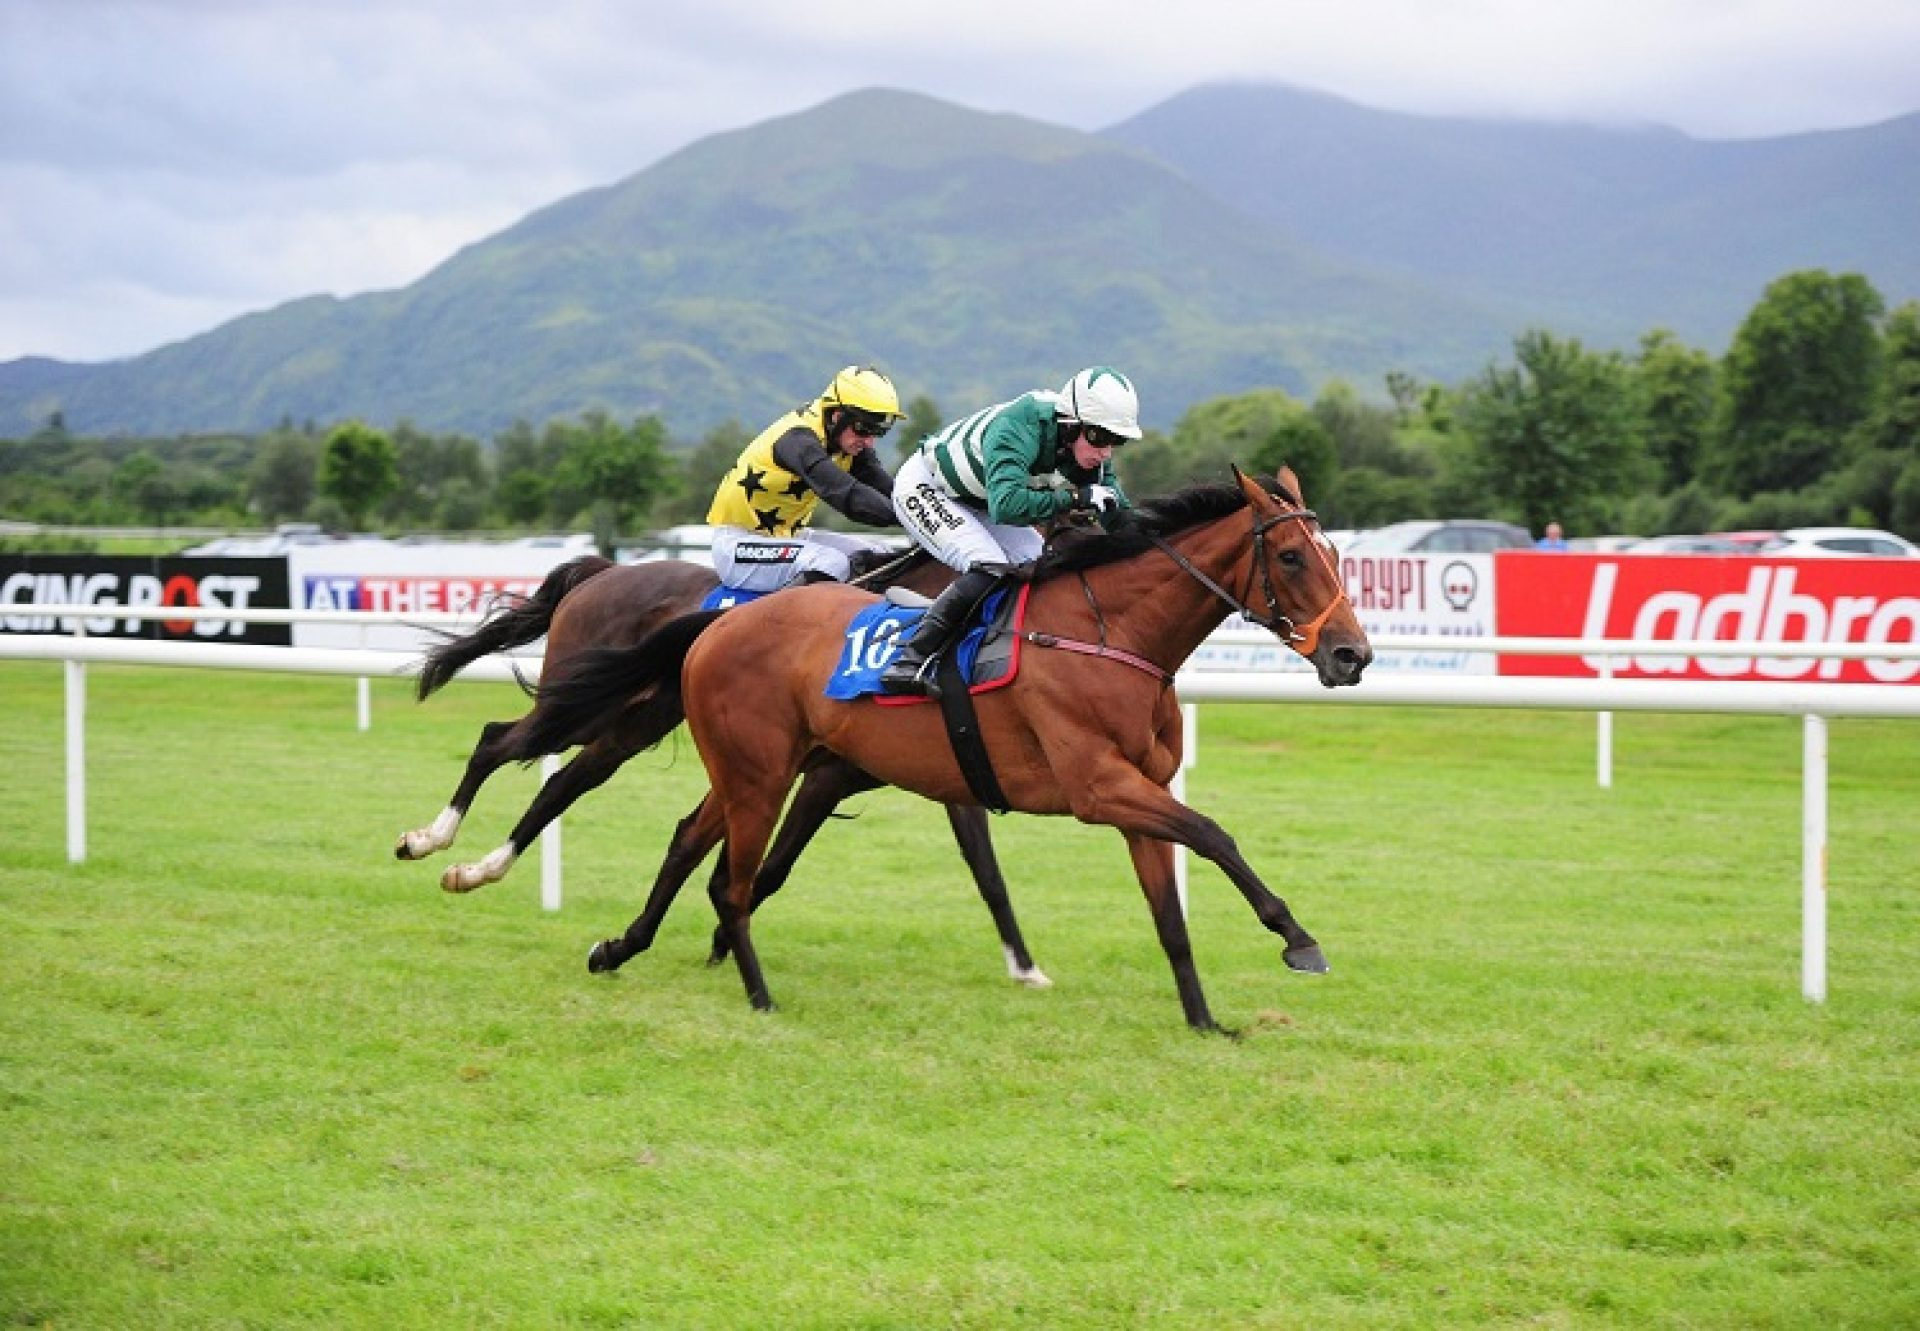 Verdana Blue (Getaway) winning a bumper at Killarney